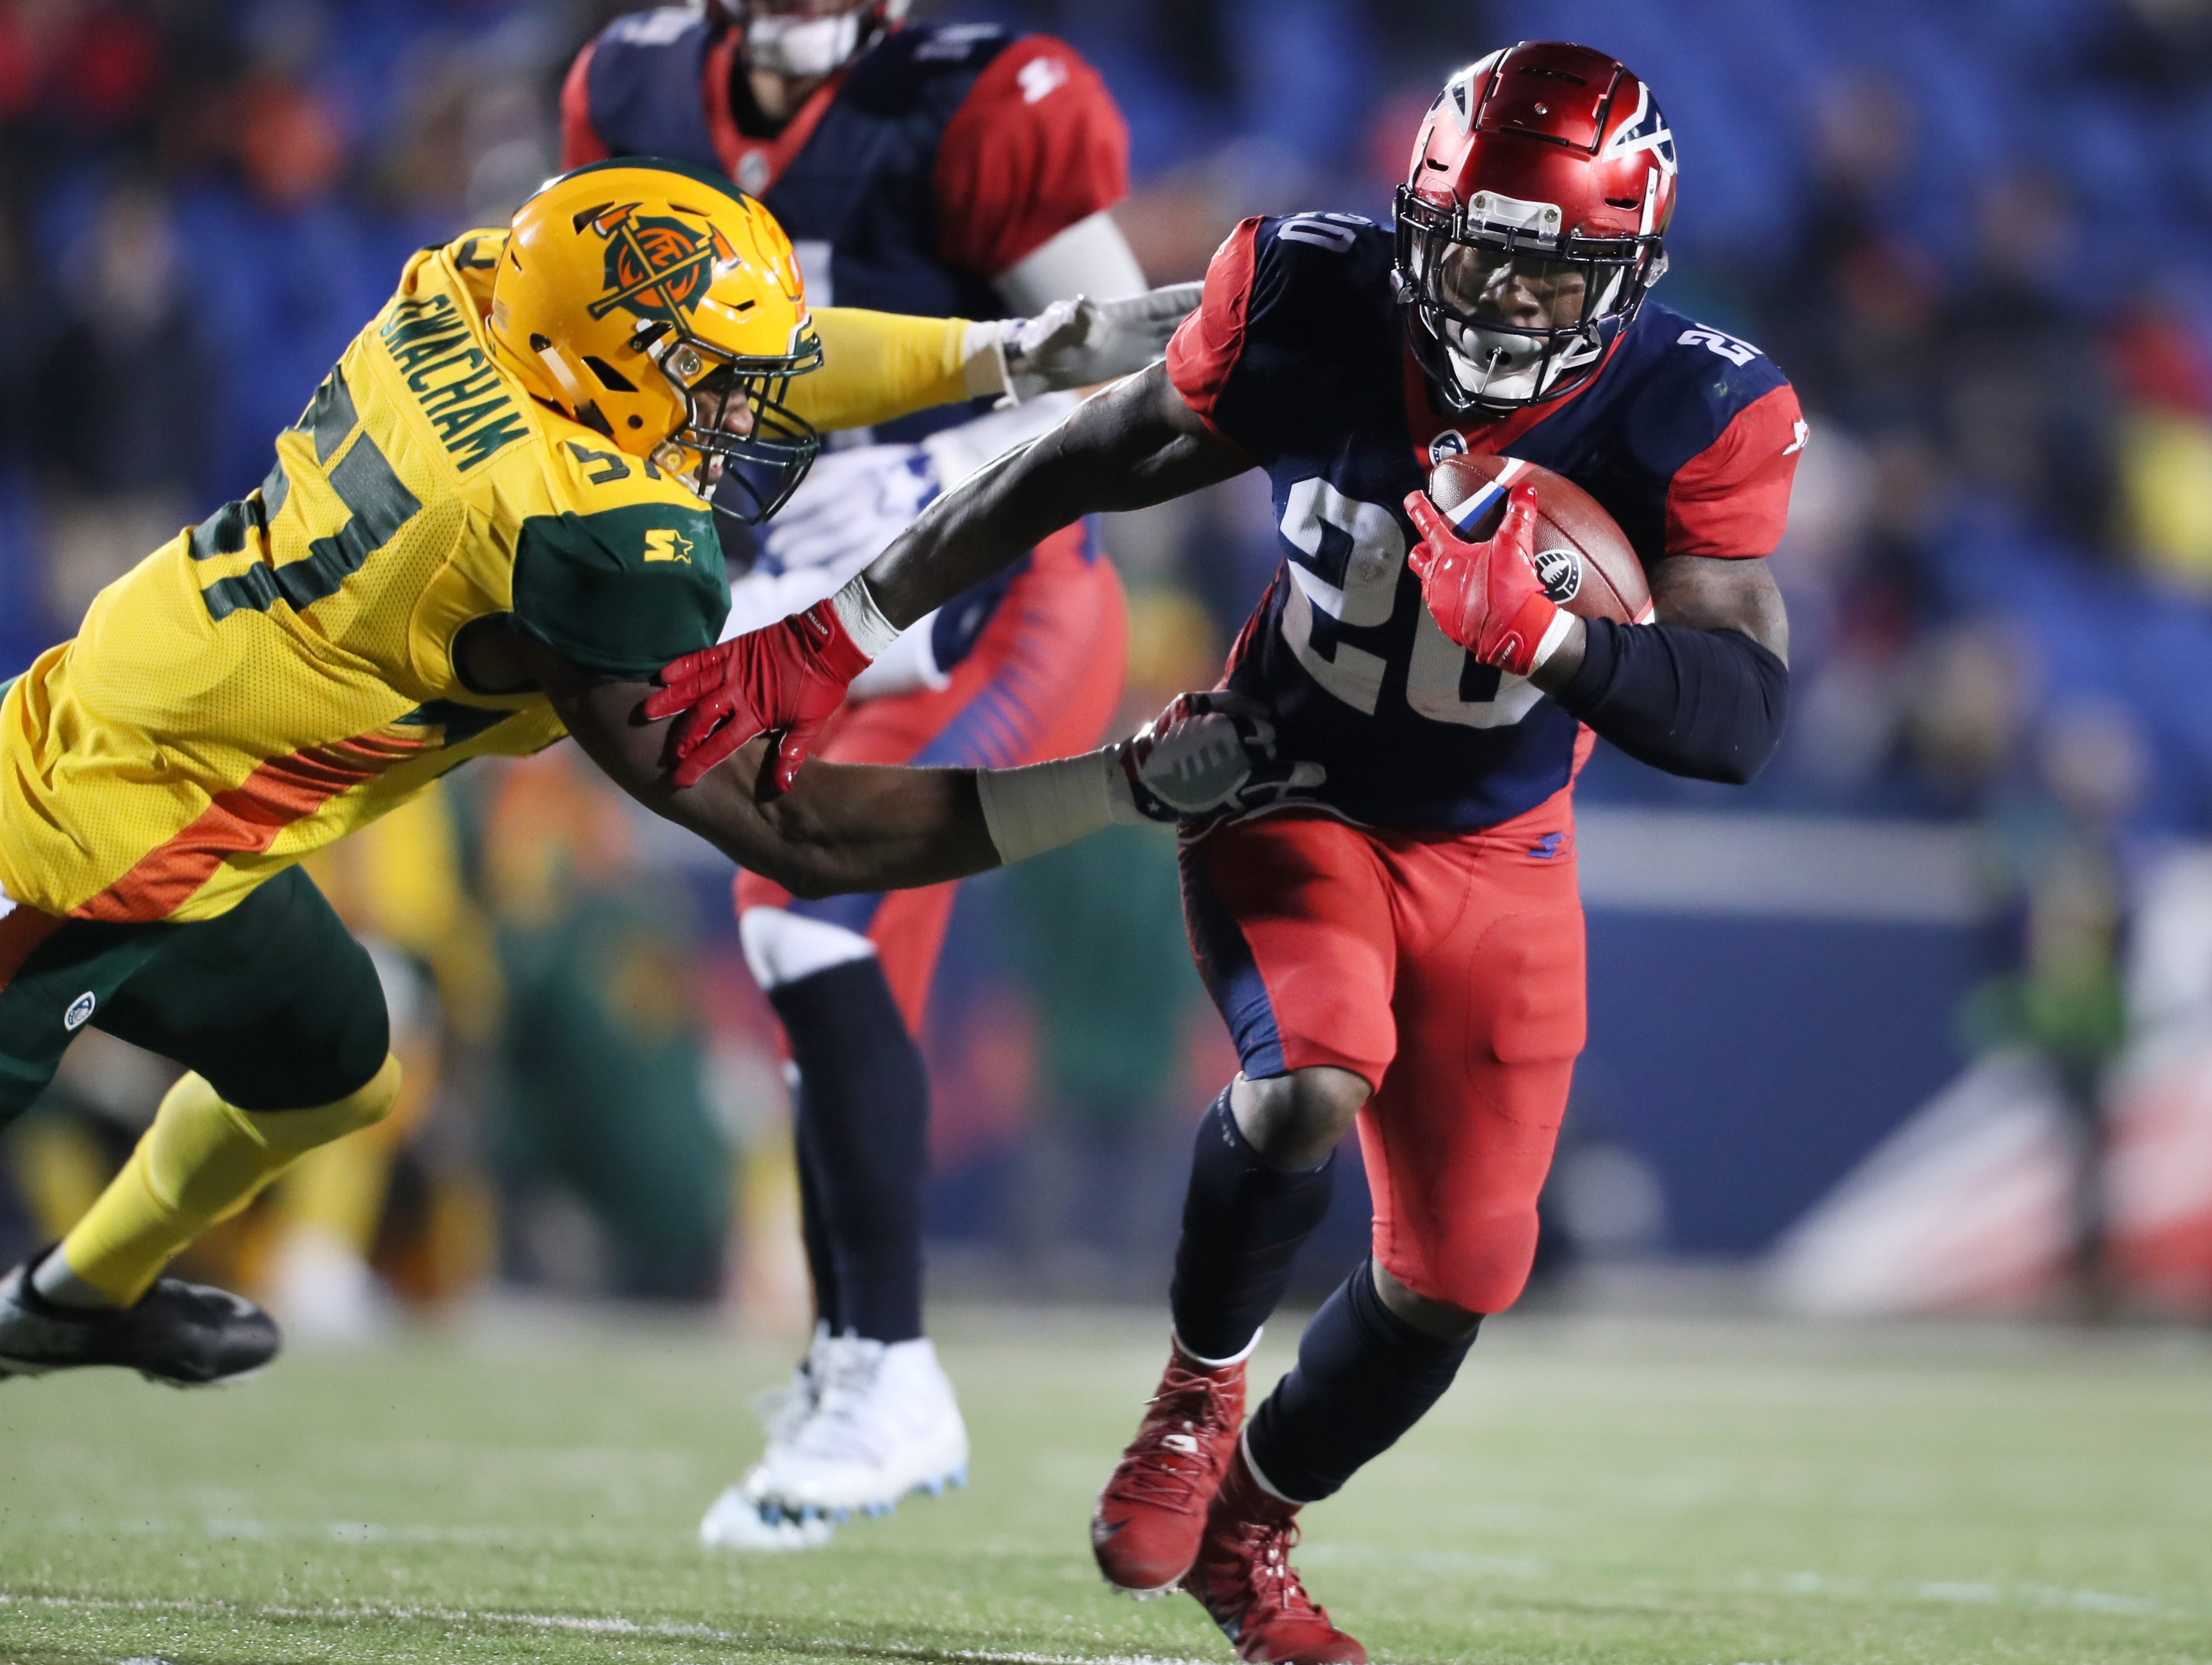 Memphis Express running back Zac Stacy breaks away from Arizona Hotshots linebacker Obum Gwacham during their game at the Liberty Bowl on Saturday, Feb. 16, 2019.